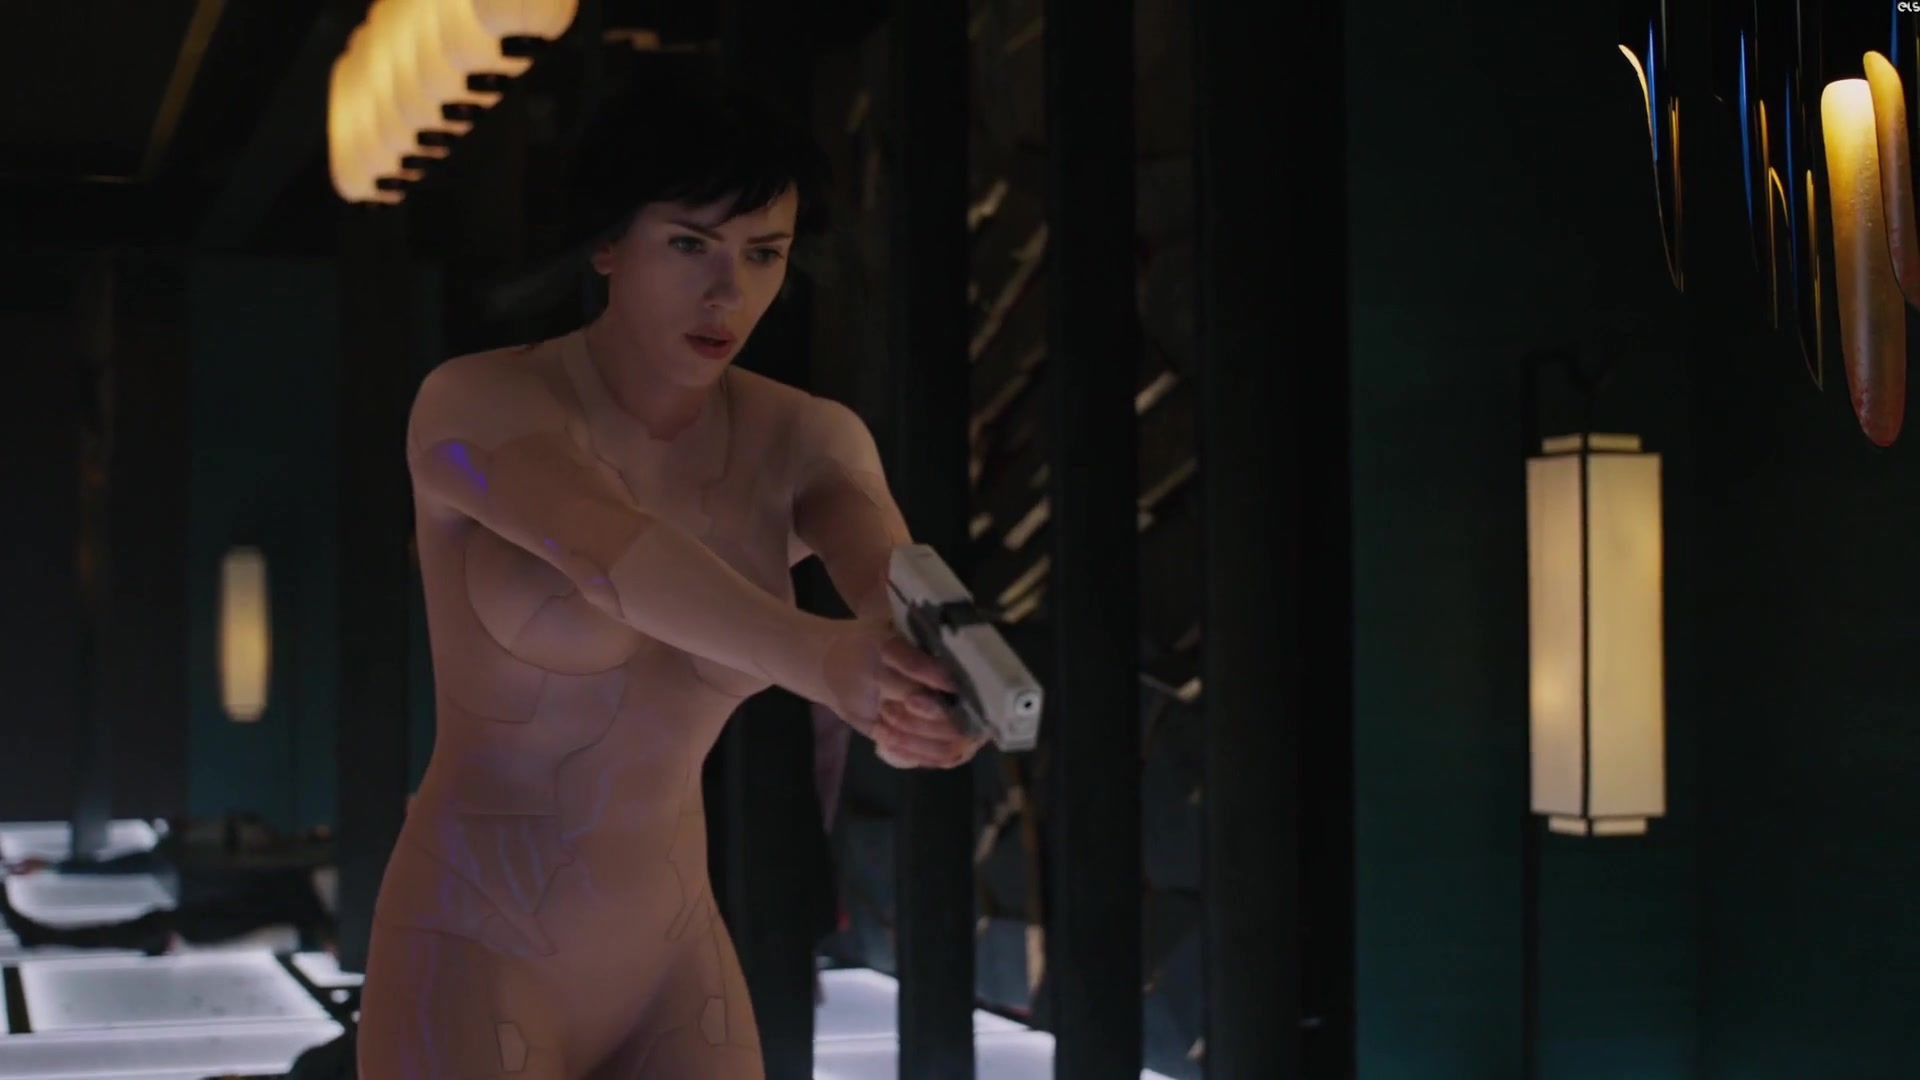 scarlet-johansen-nude-scene-big-butts-ass